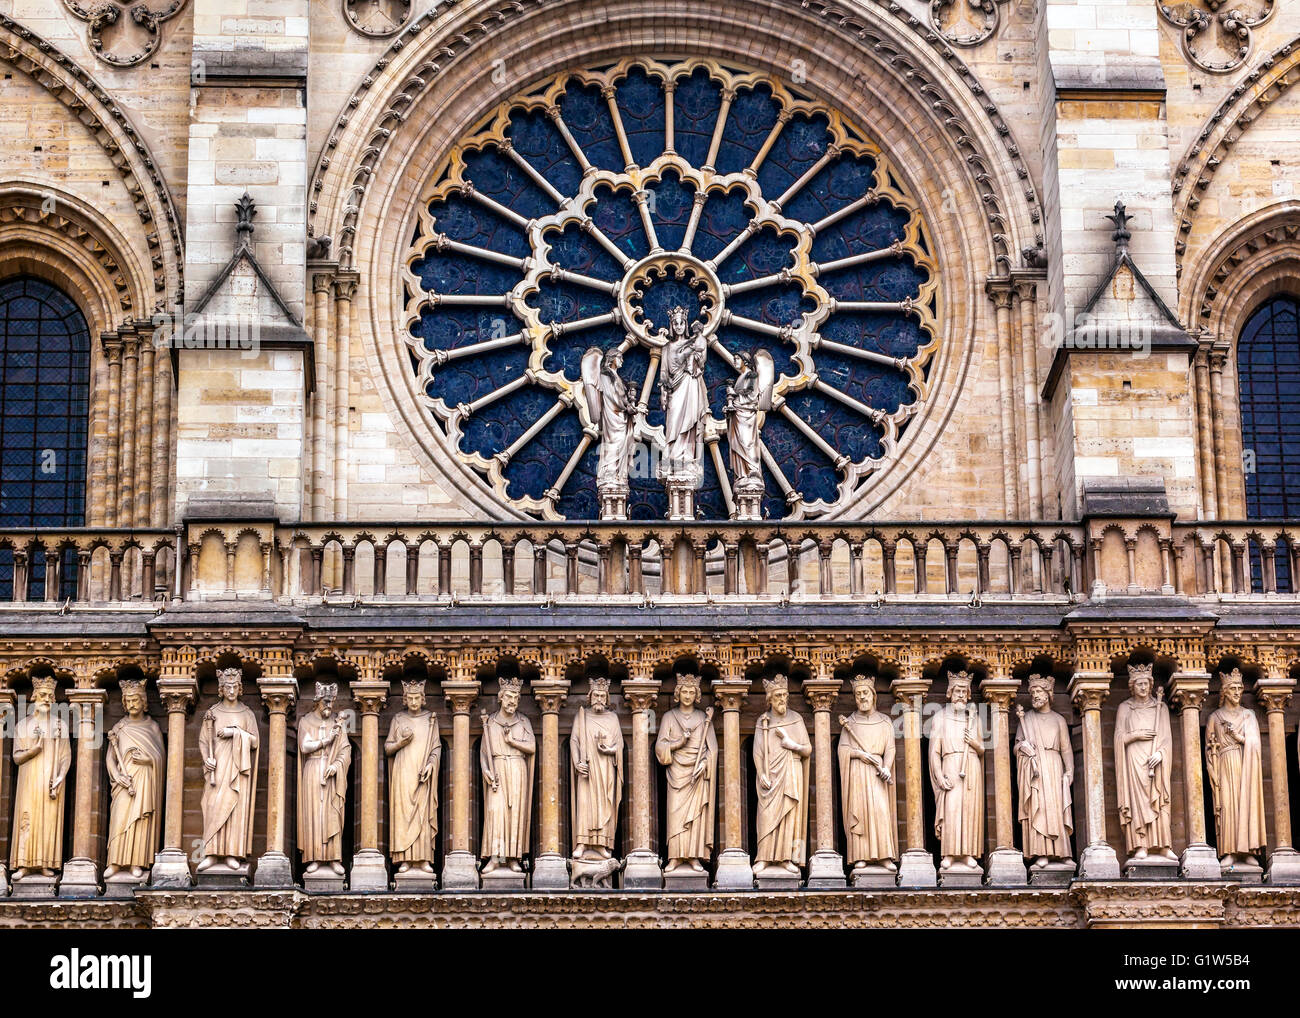 Kings Facade Rose Window Notre Dame Cathedral Paris France.  Notre Dame was built between 1163 and 1250 AD. - Stock Image